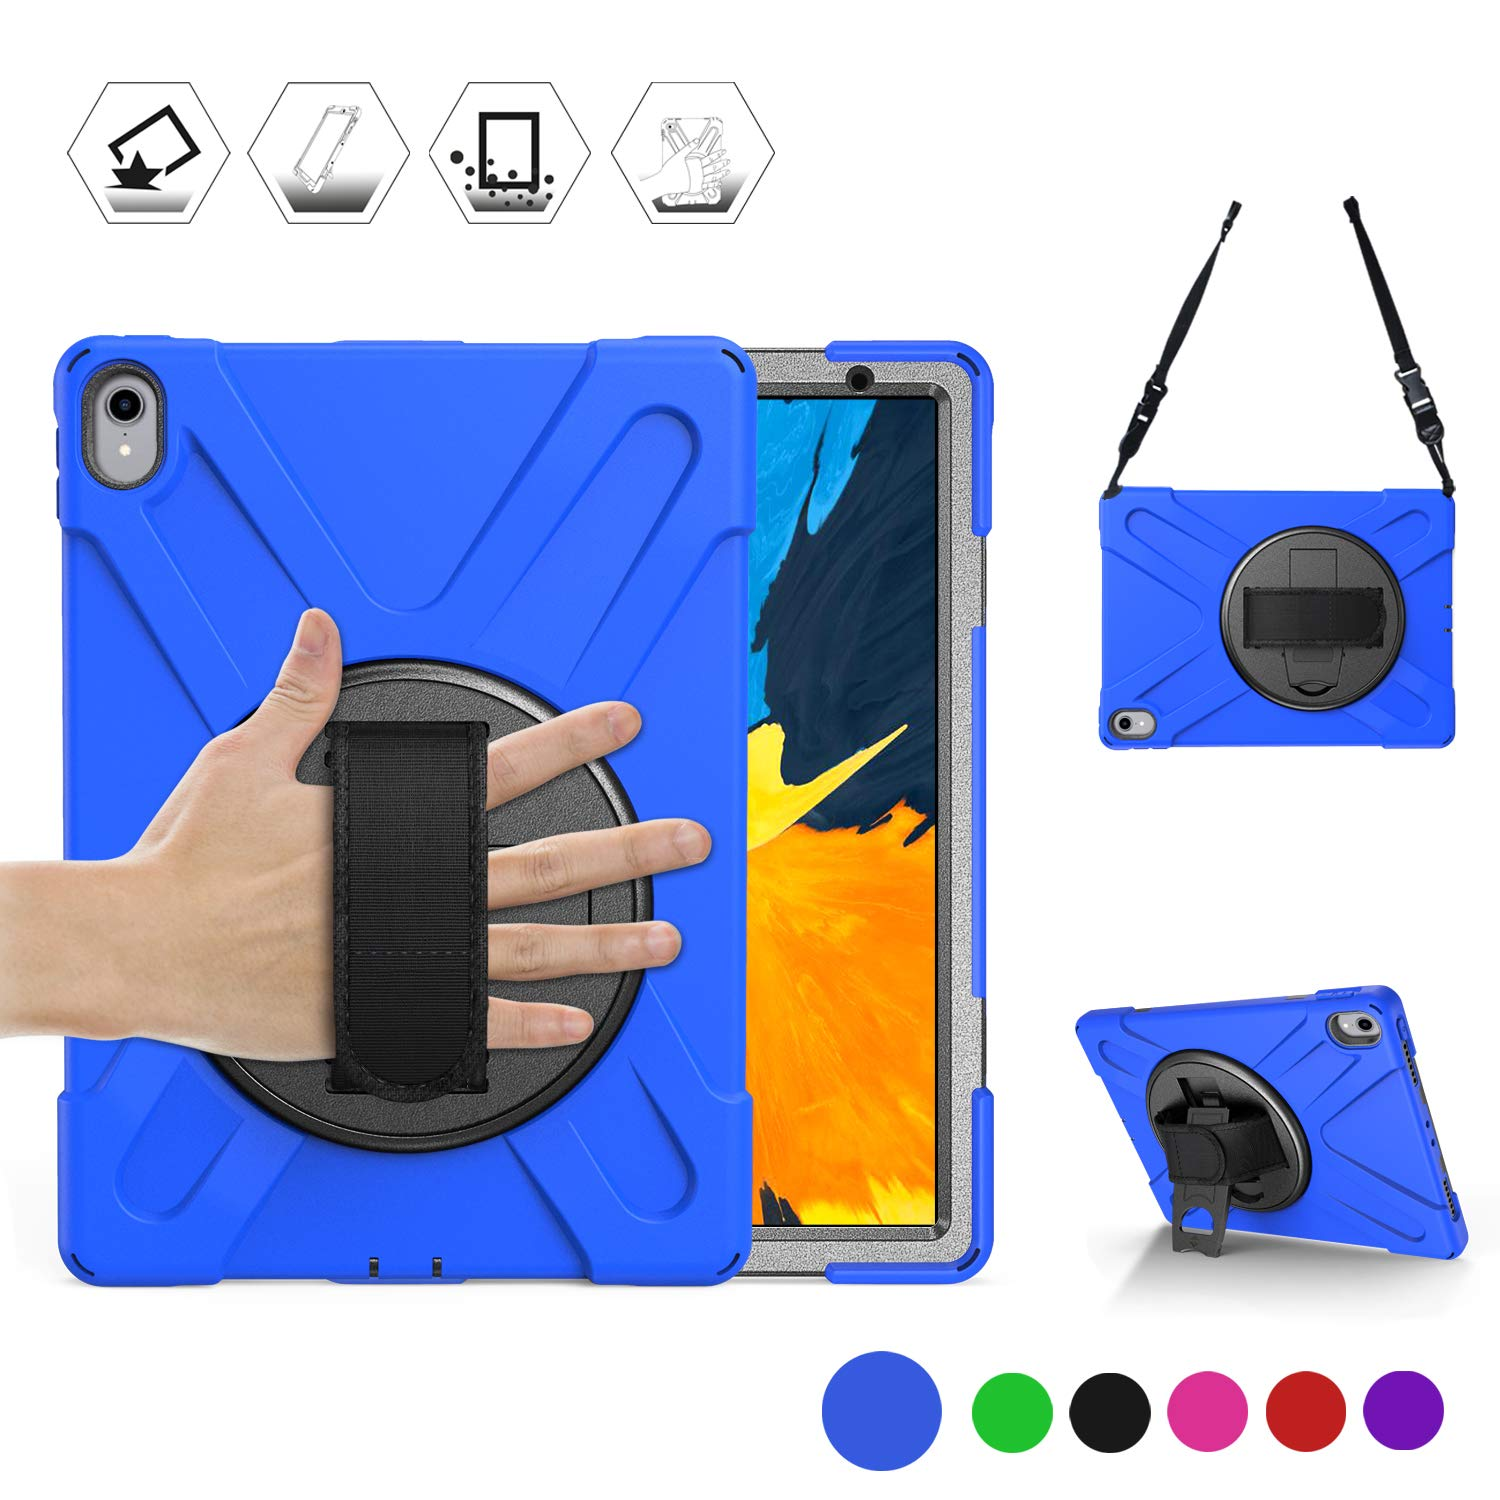 """New iPad Pro 11 Inch Case, BRAECN [Hand Strap] [Kickstand] [Carrying Strap] Heavy Duty Shockproof Case for iPad Pro 11"""" 2018 Tablet [Not Compatible with iPad Pencil Magnetic Attach Charge/Pair]-Blue"""